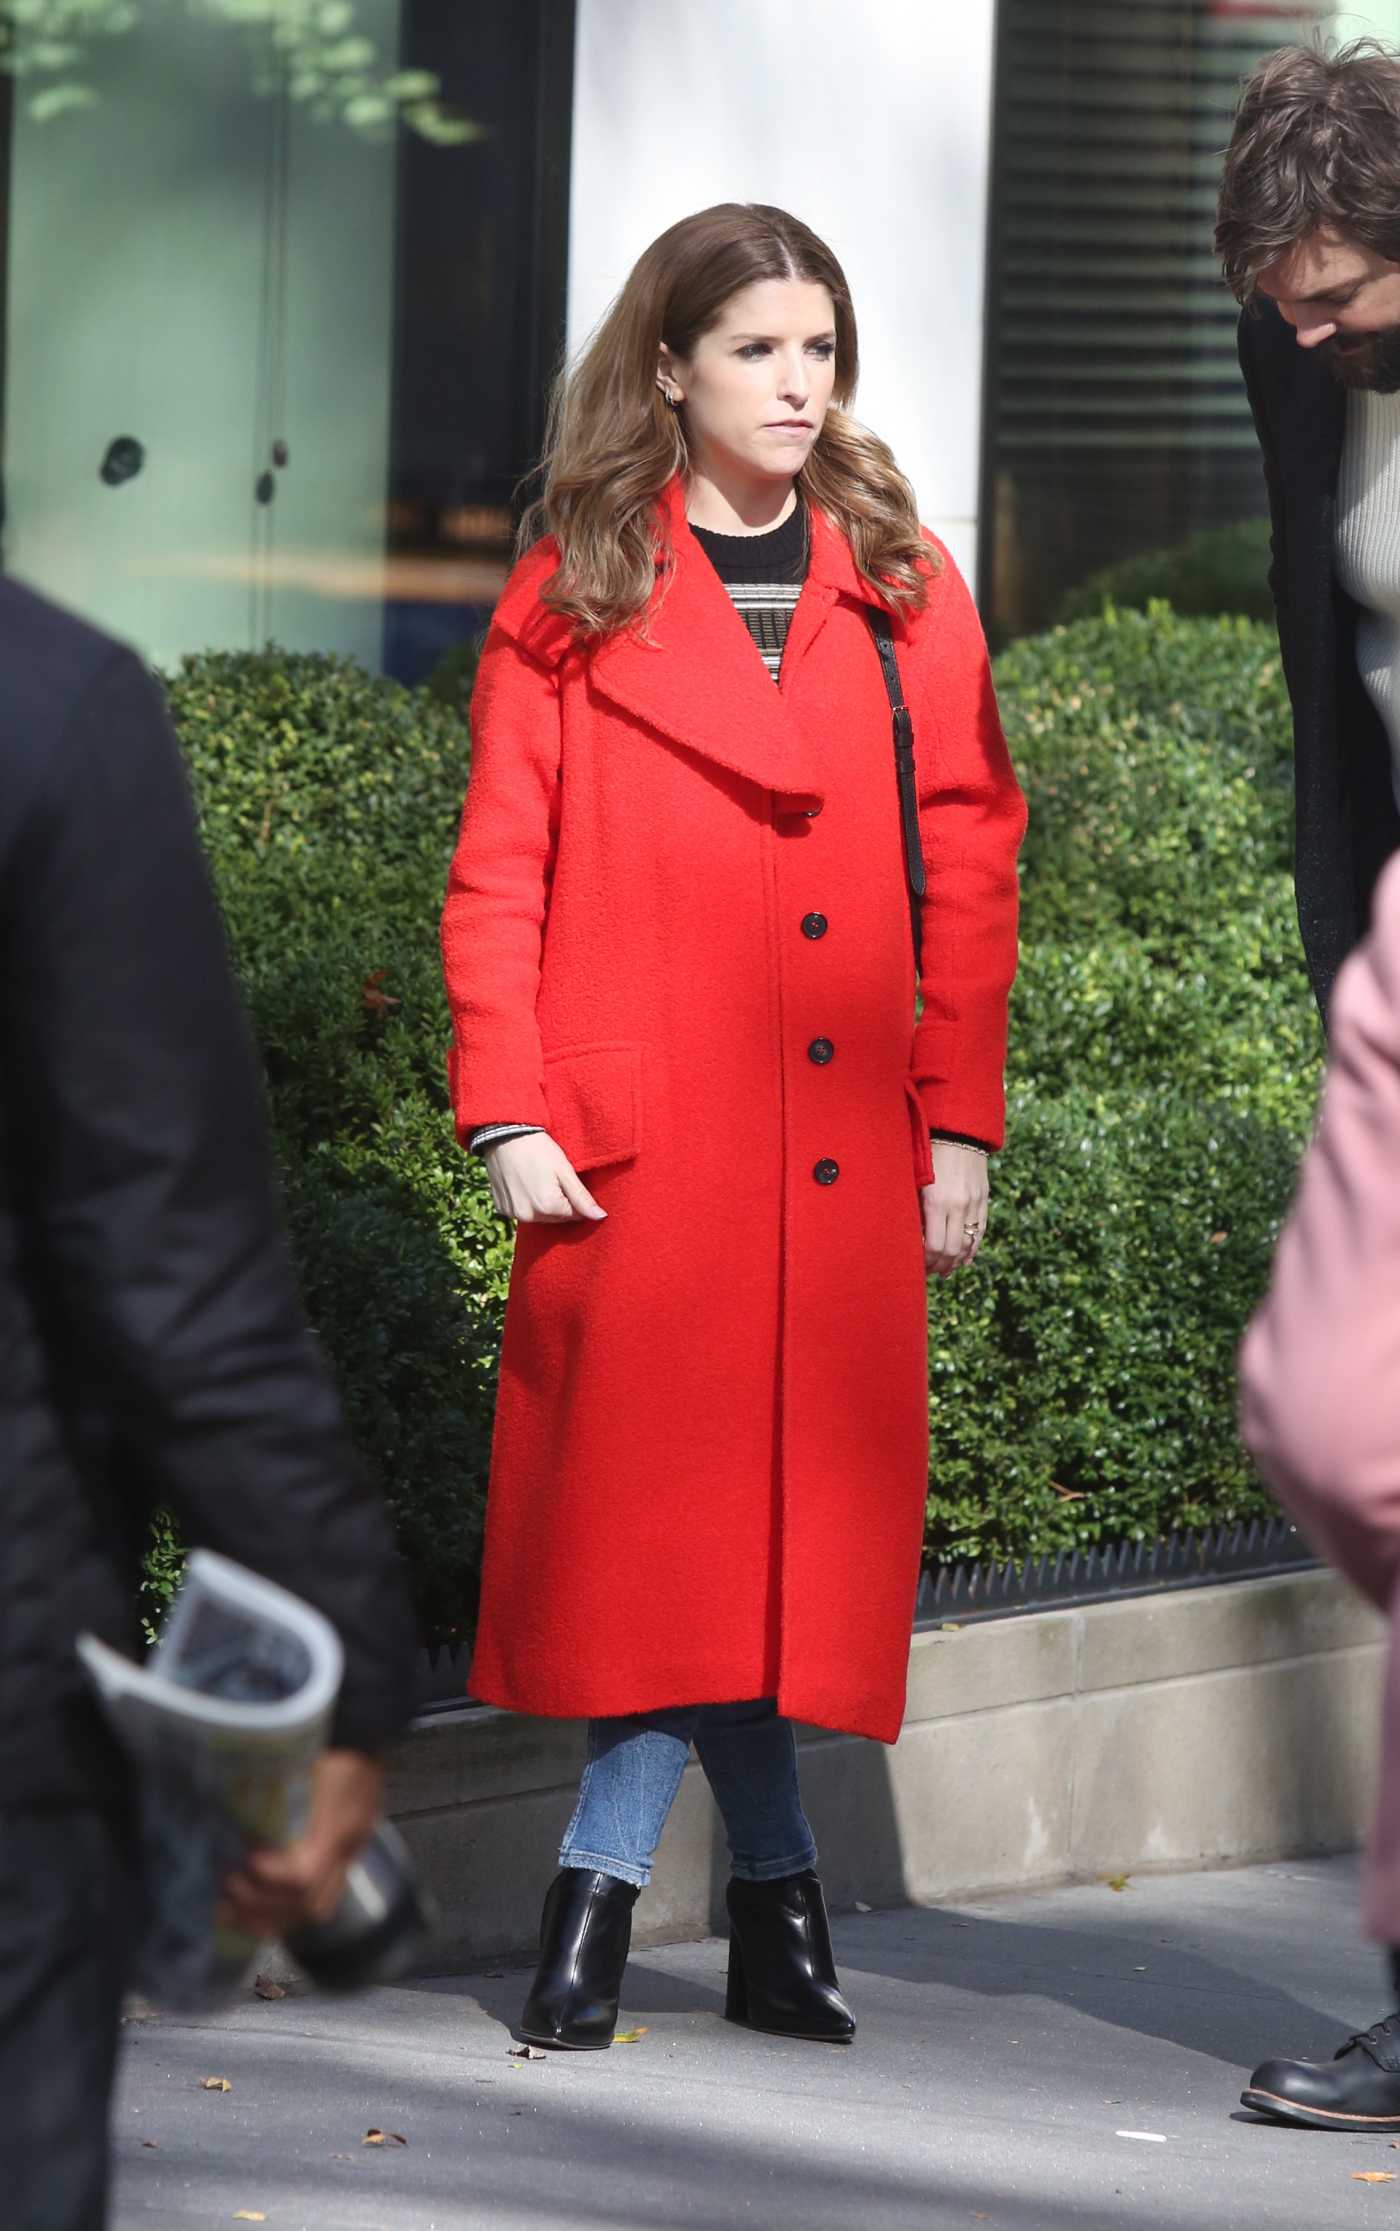 Anna Kendrick in a Red Coat on the Set of Love Life in New York 11/01/2019